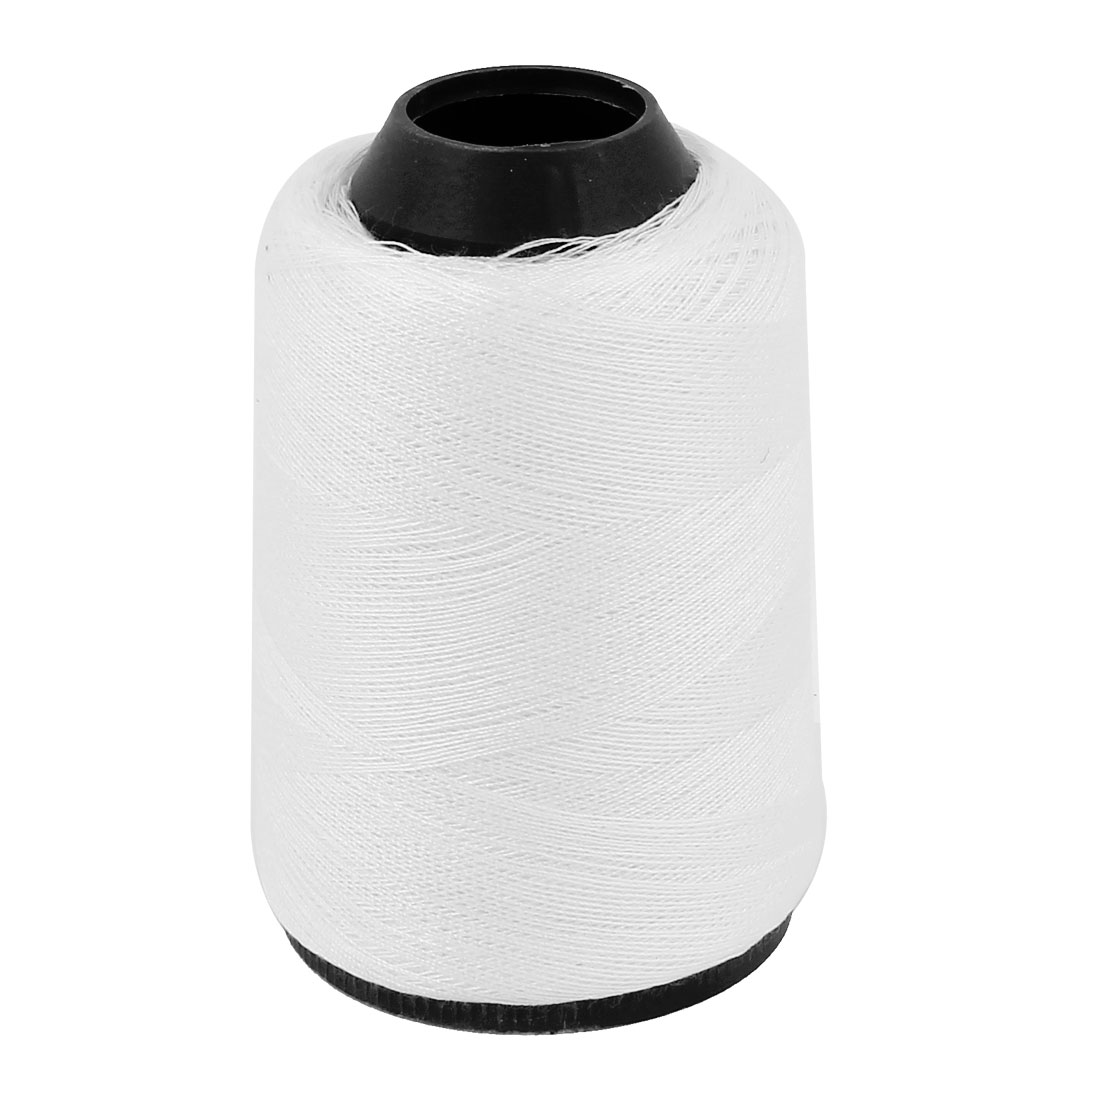 Polyester Tailoring Crafting Clothing Sewing Thread String Reel Spool White